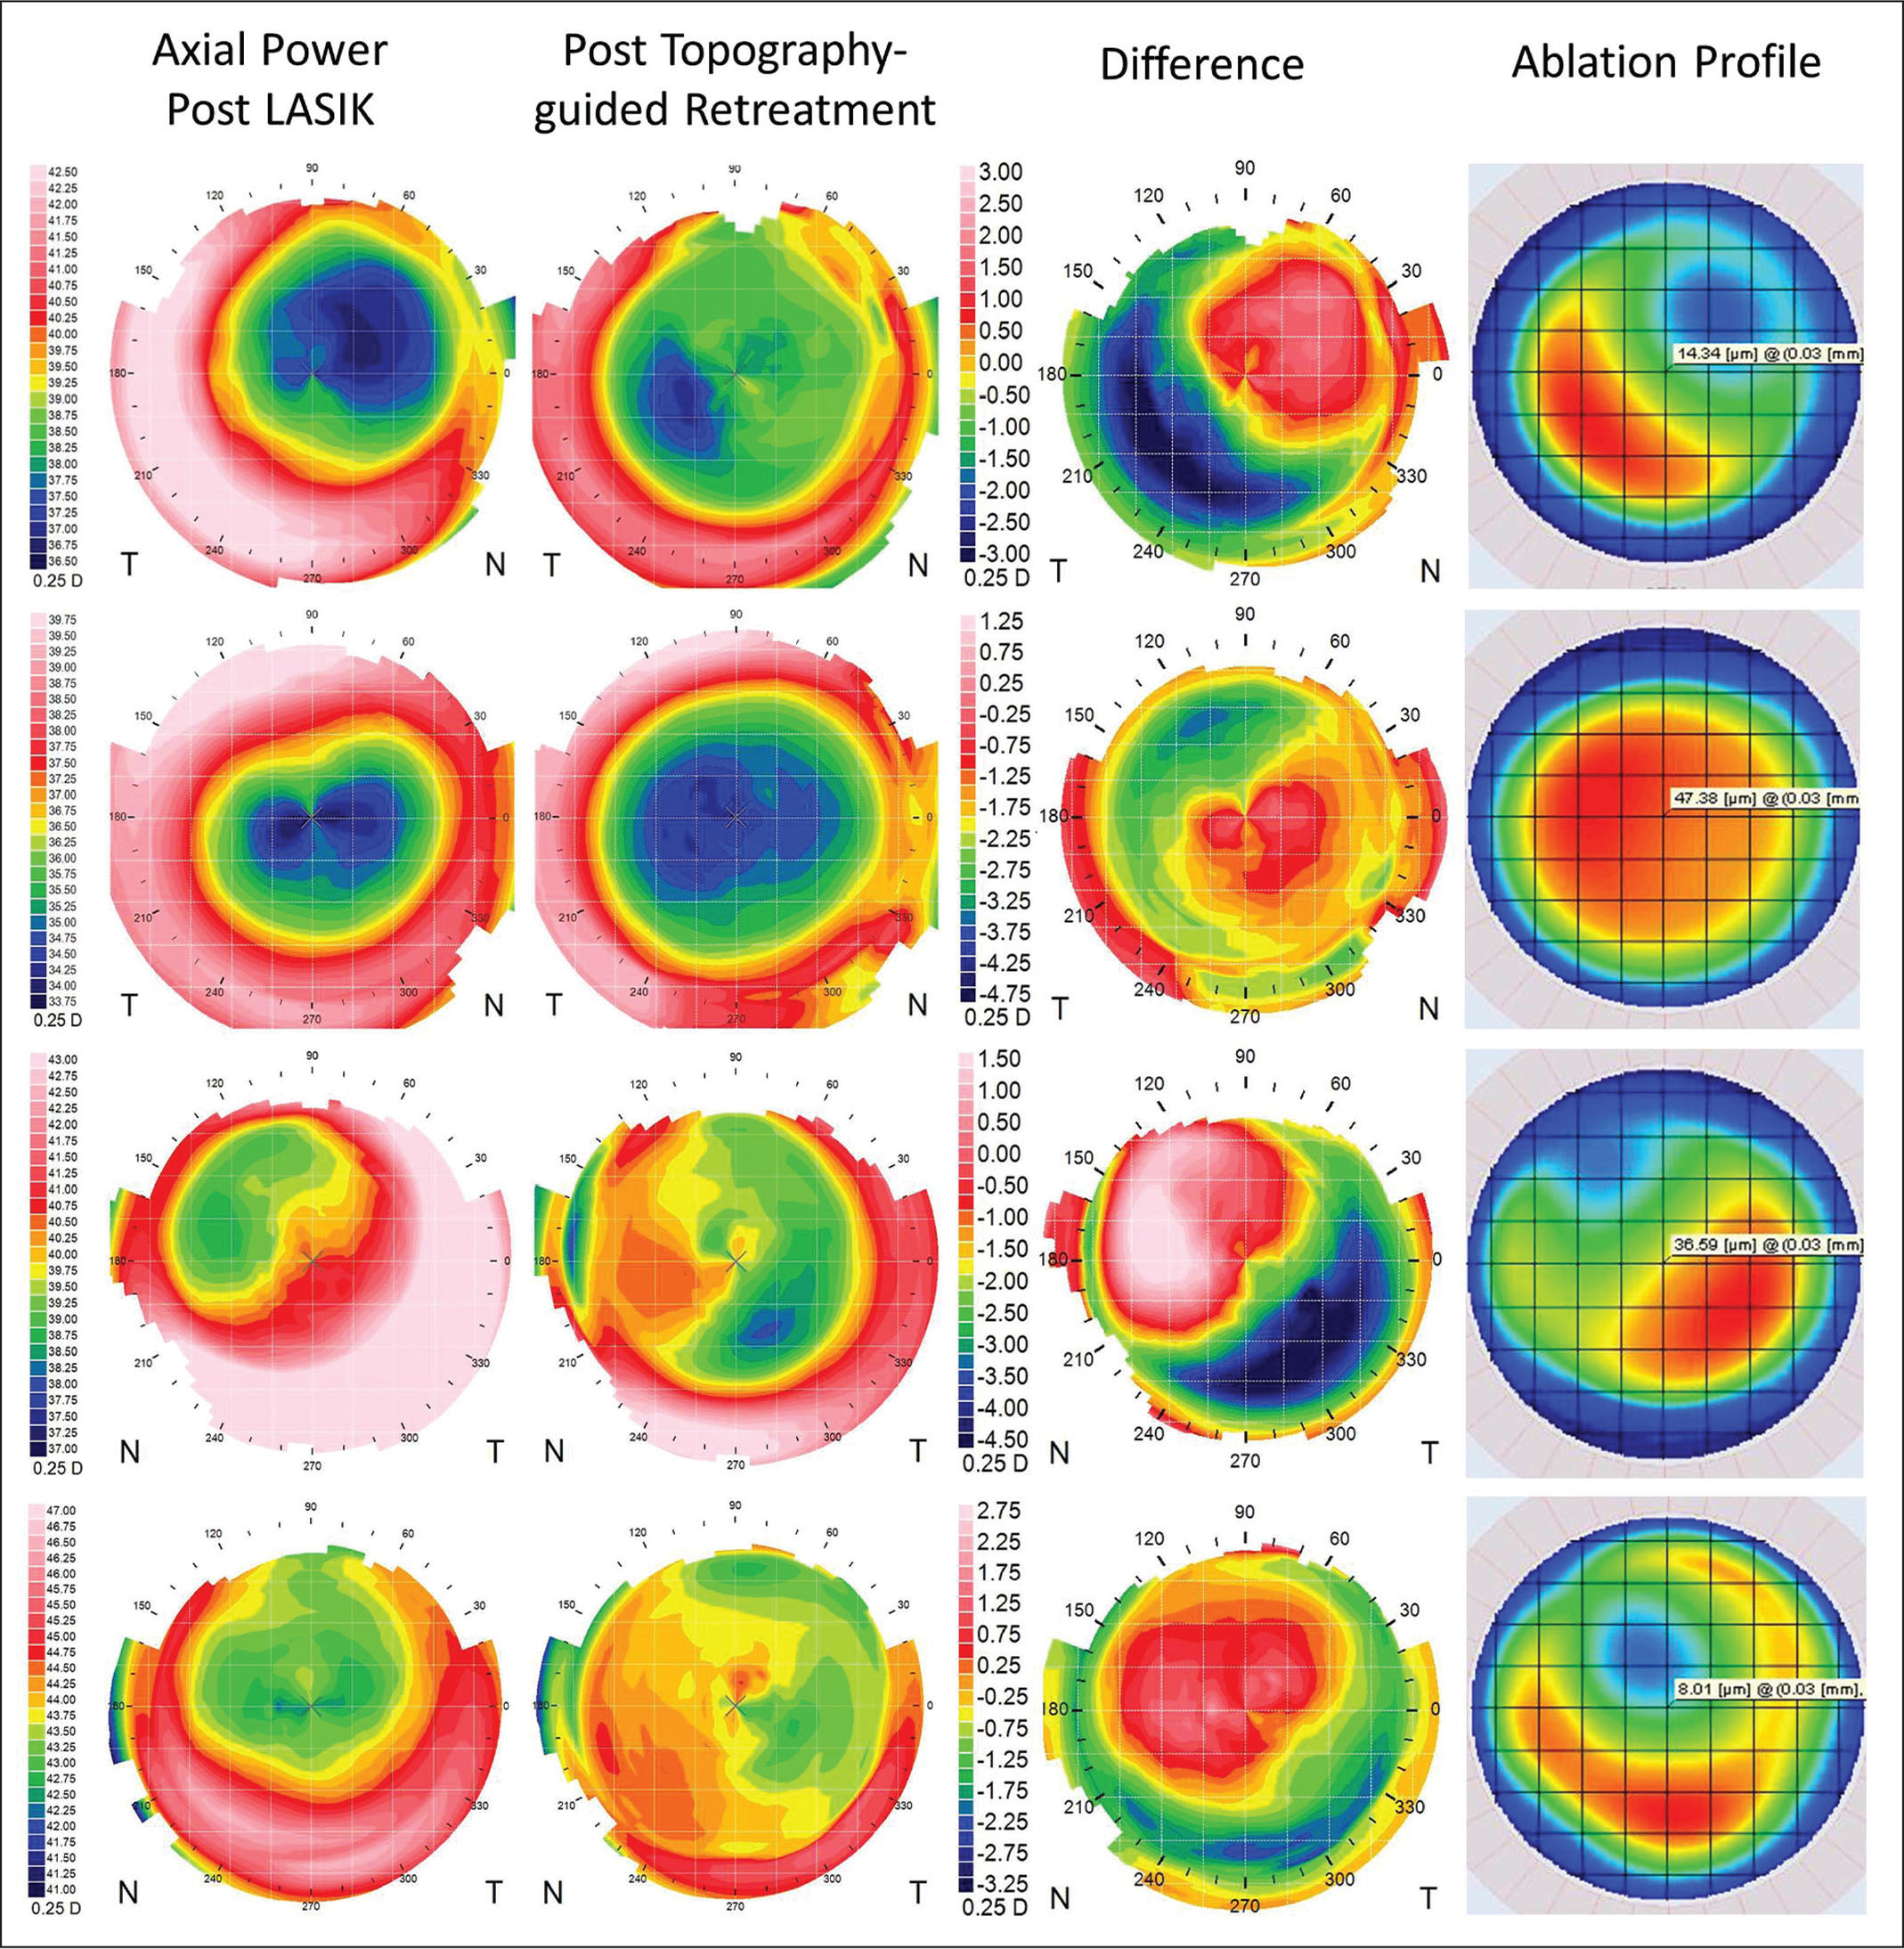 Four example cases showing the axial curvature map before and after a topography-guided re-treatment. The difference map is shown in the third column, next to the ablation profile that was used; the region of flattening on the difference map corresponded with the area of maximum ablation.